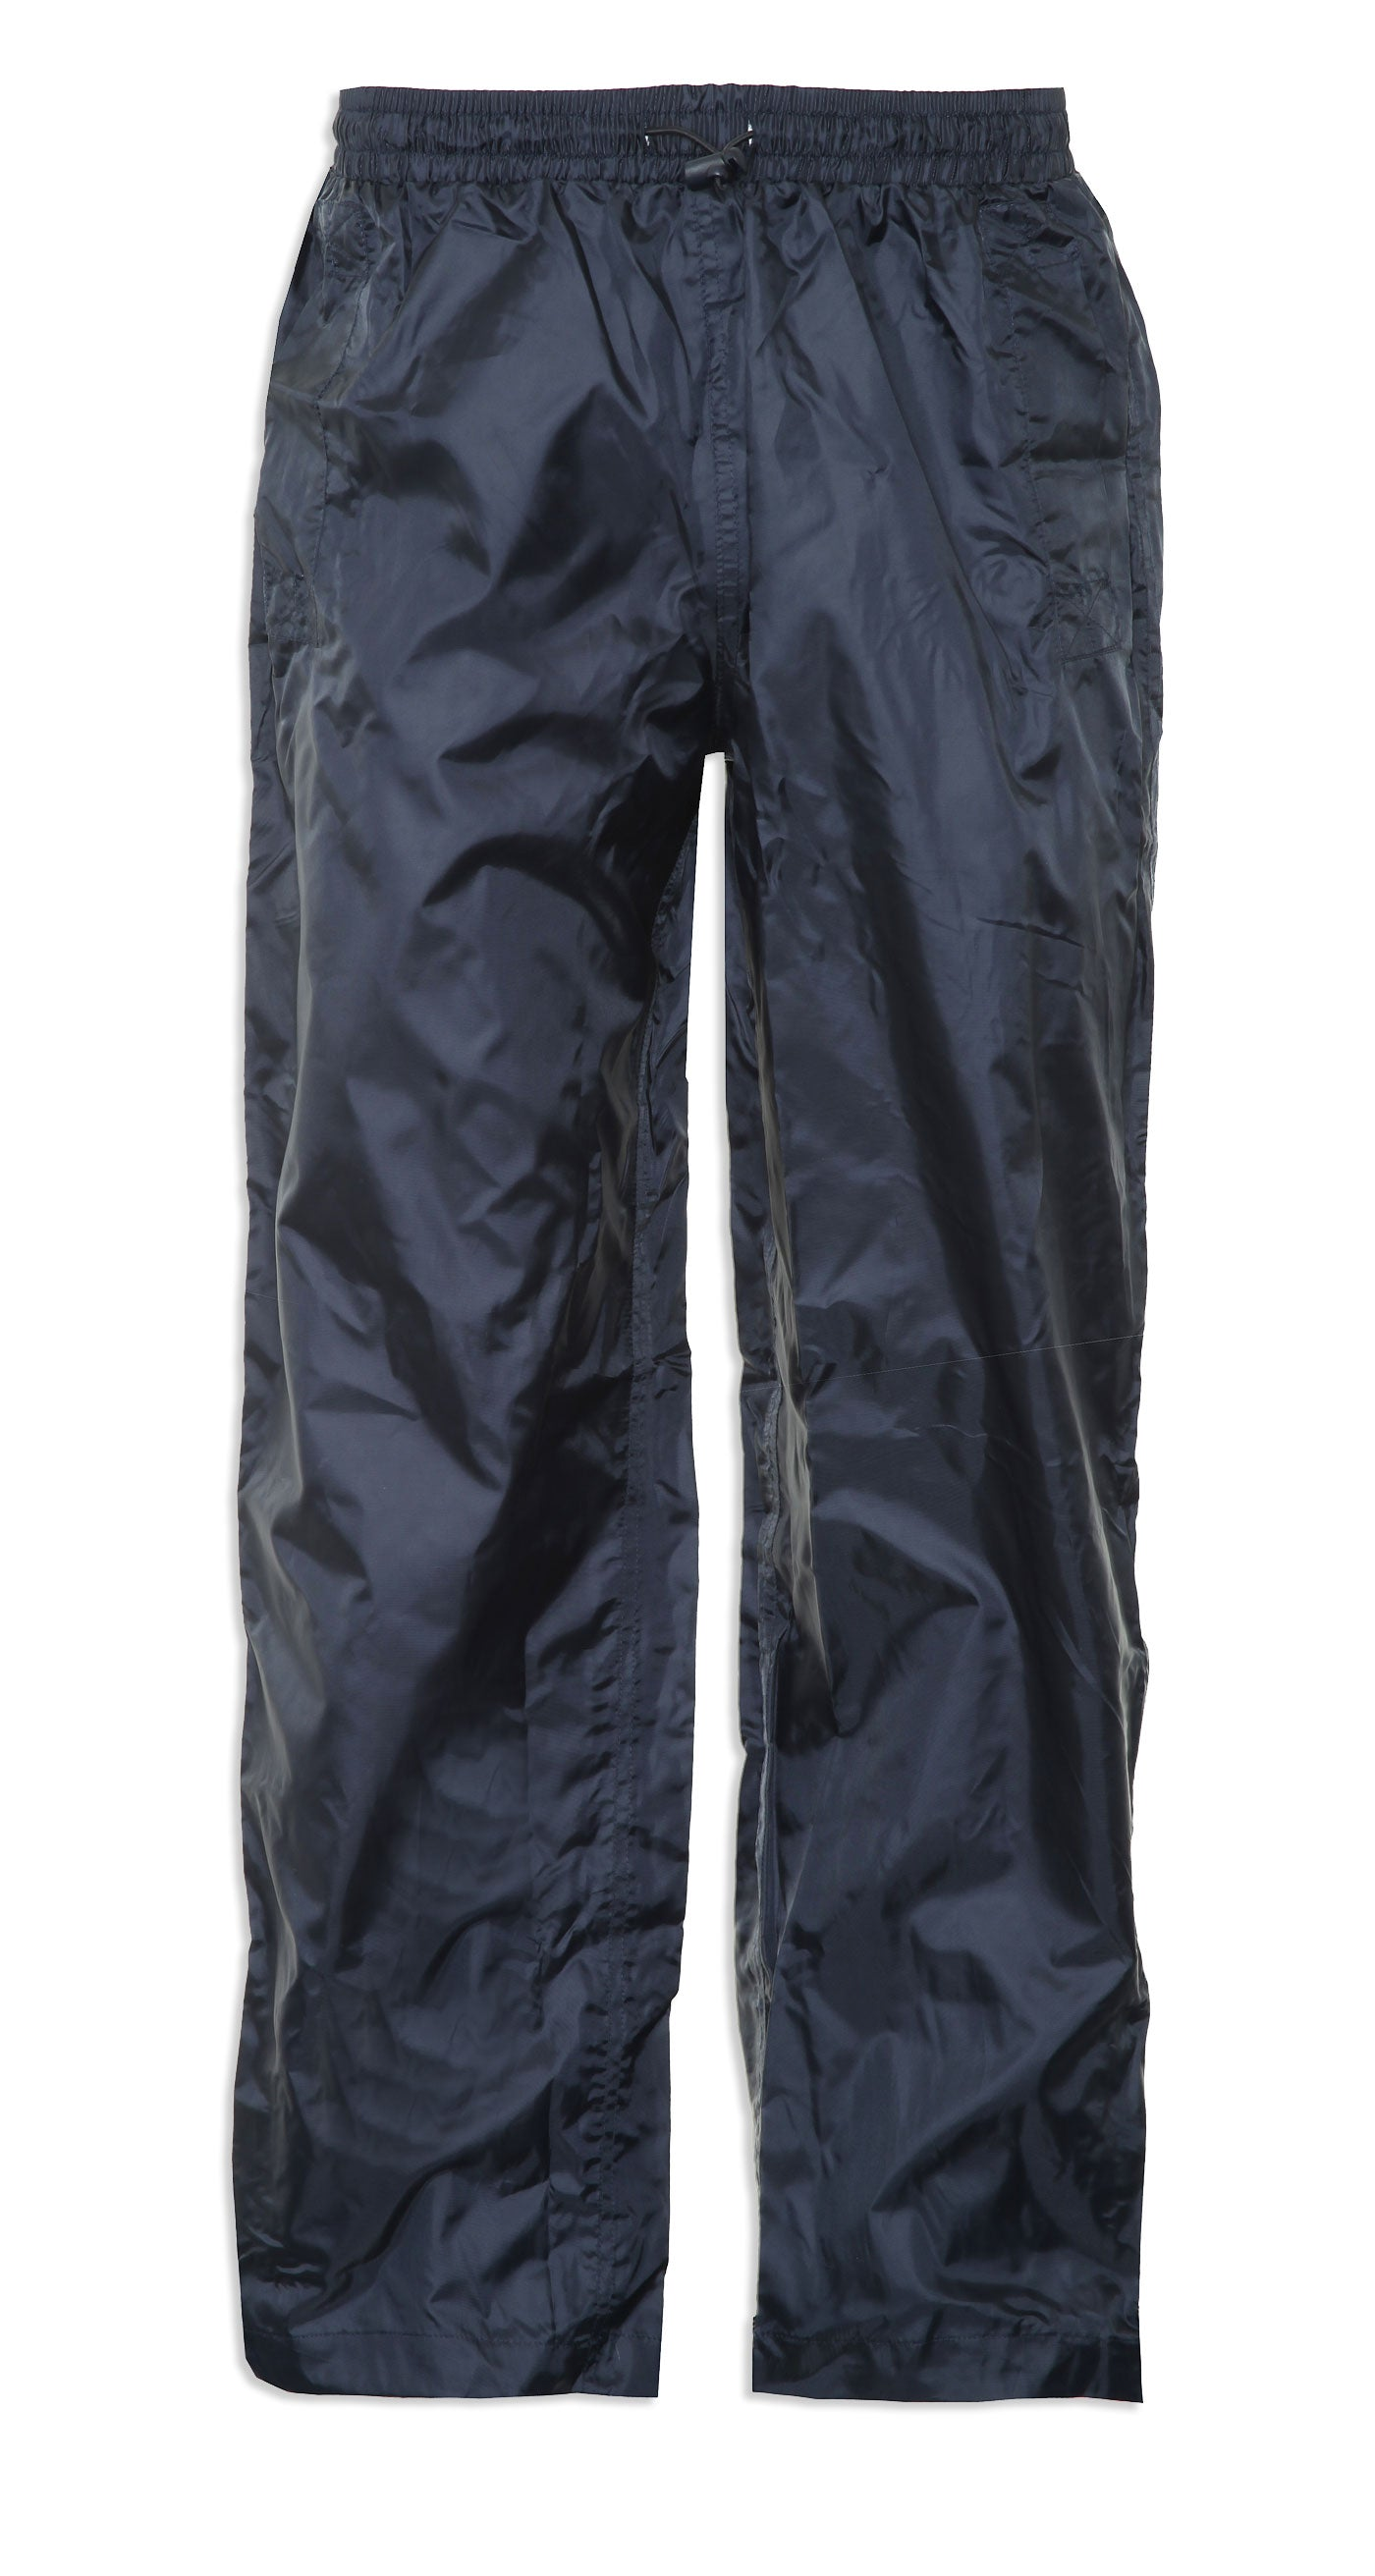 navy overtrousers Champion Aqua-Vent® waterproof, windproof and breathable fabric